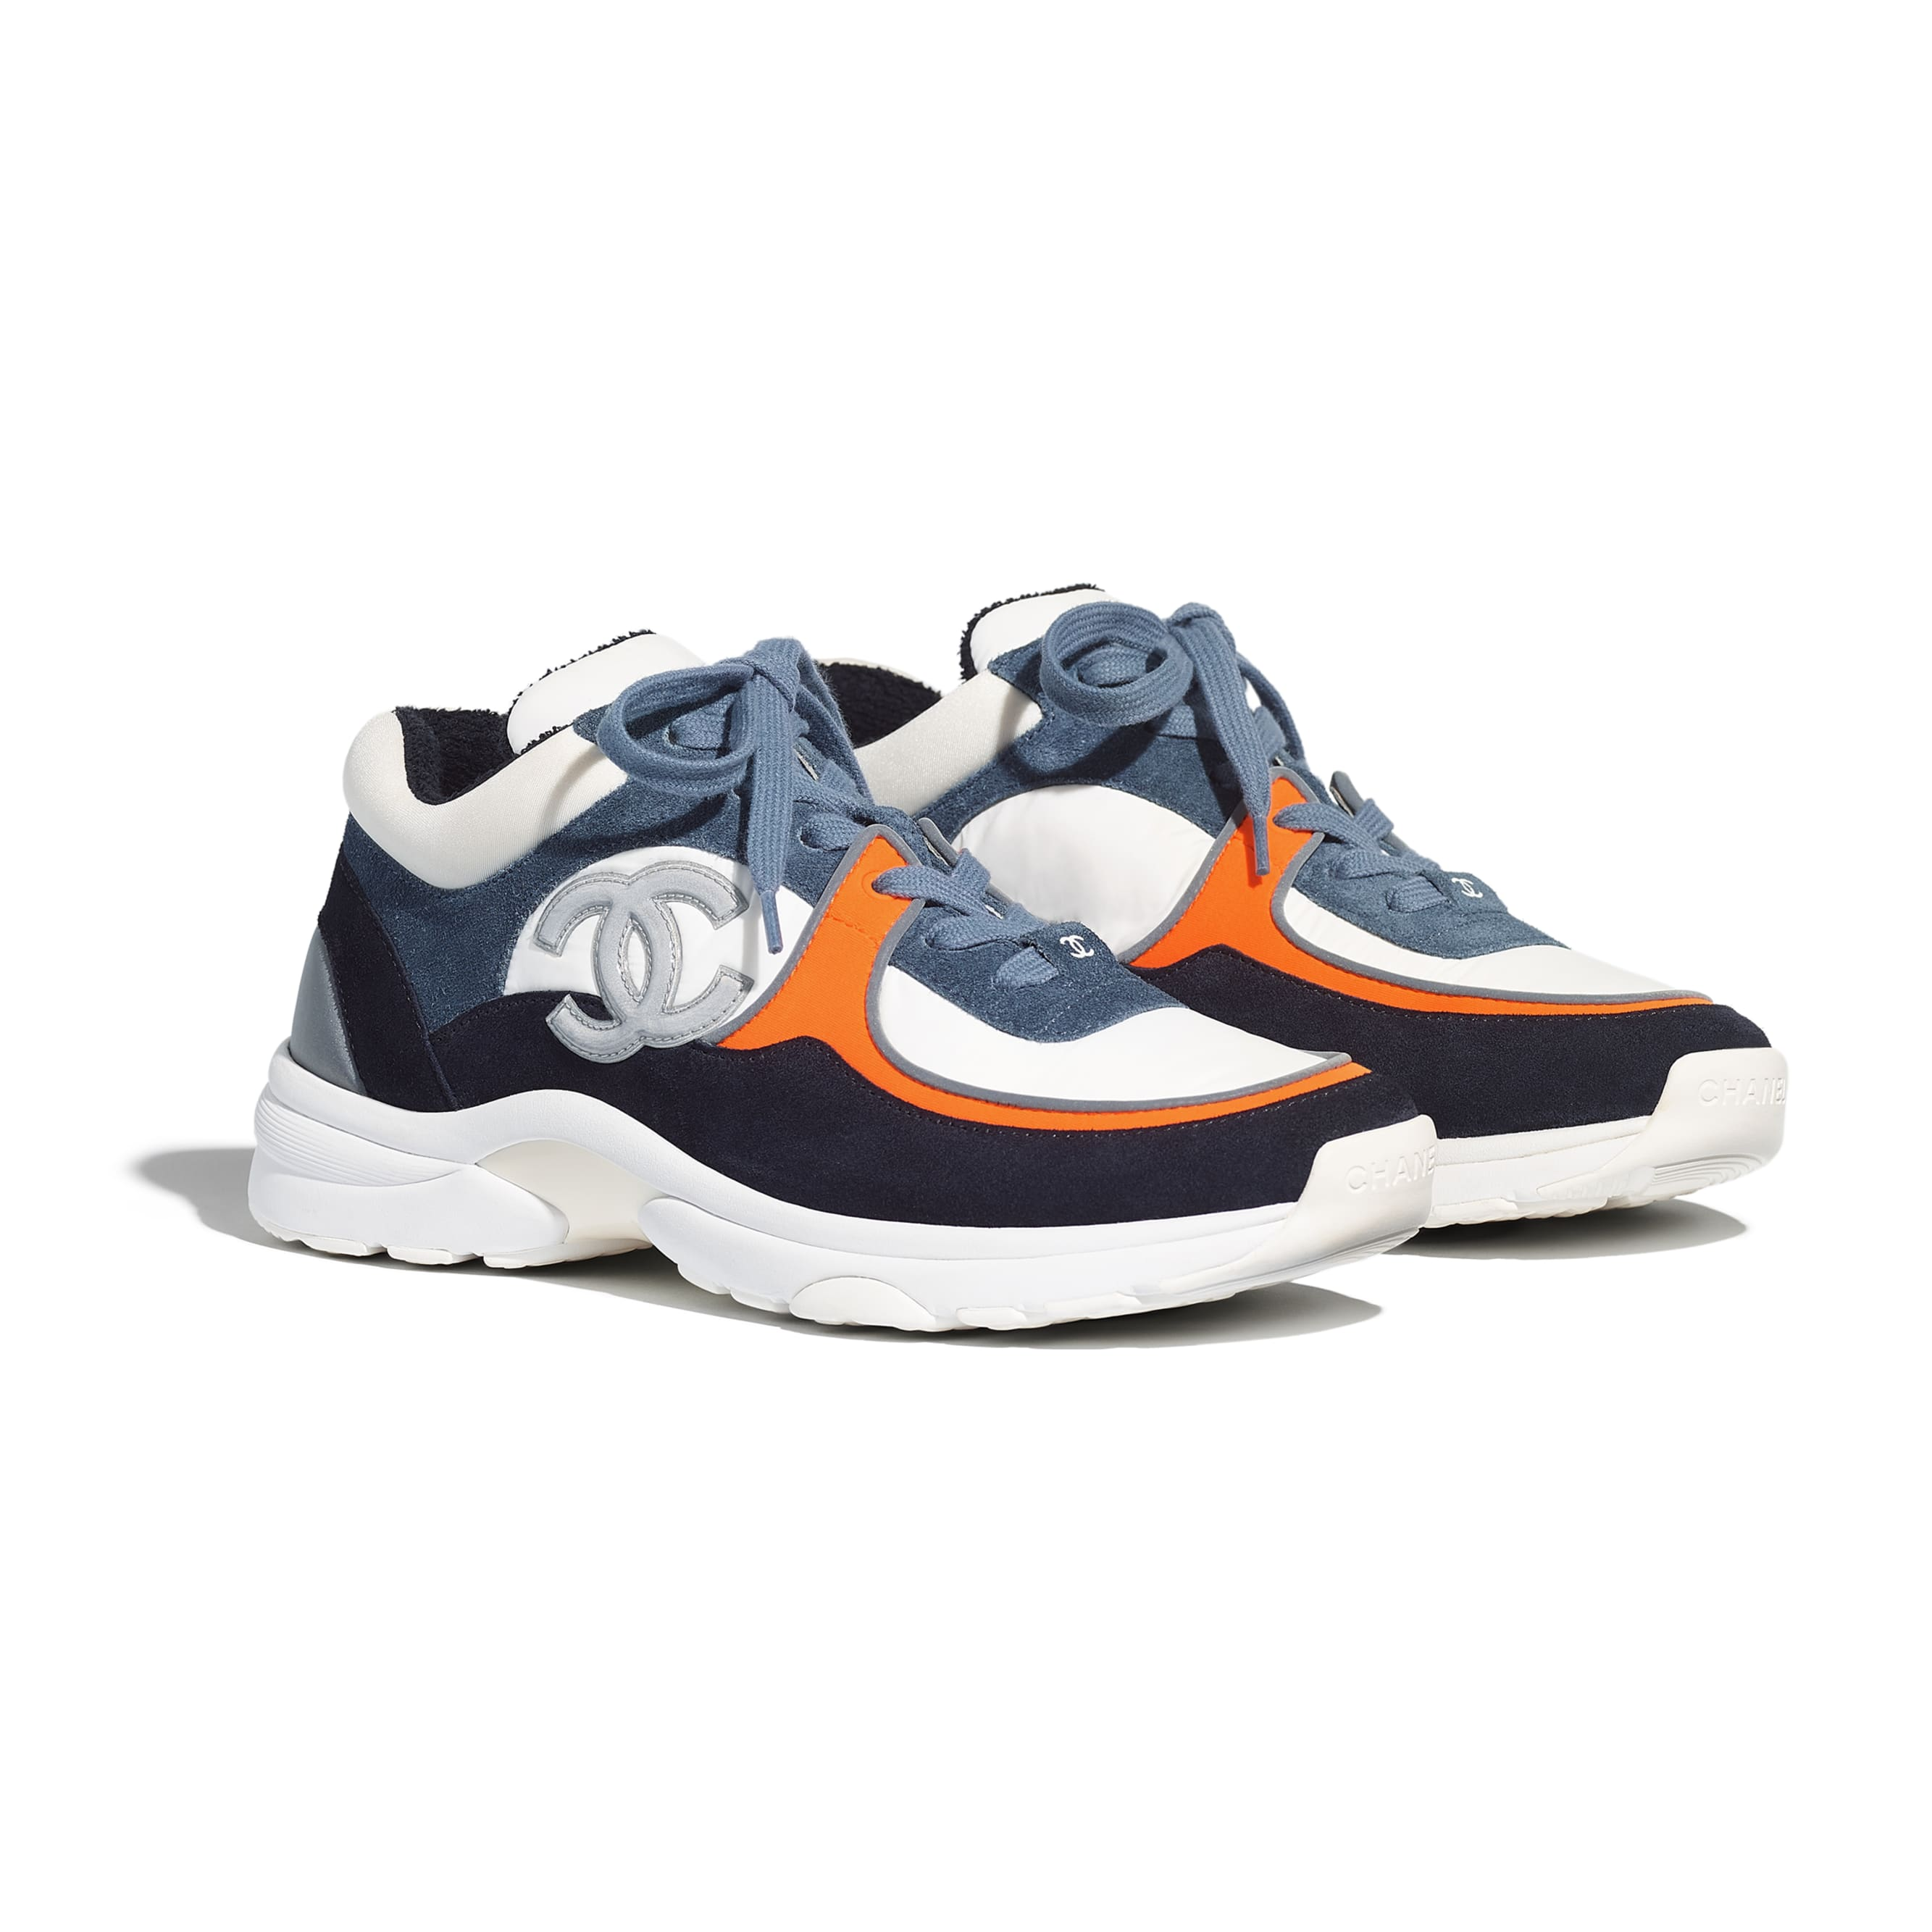 Trainers - White & Navy Blue - Calfskin & Mixed Fibers - Alternative view - see standard sized version